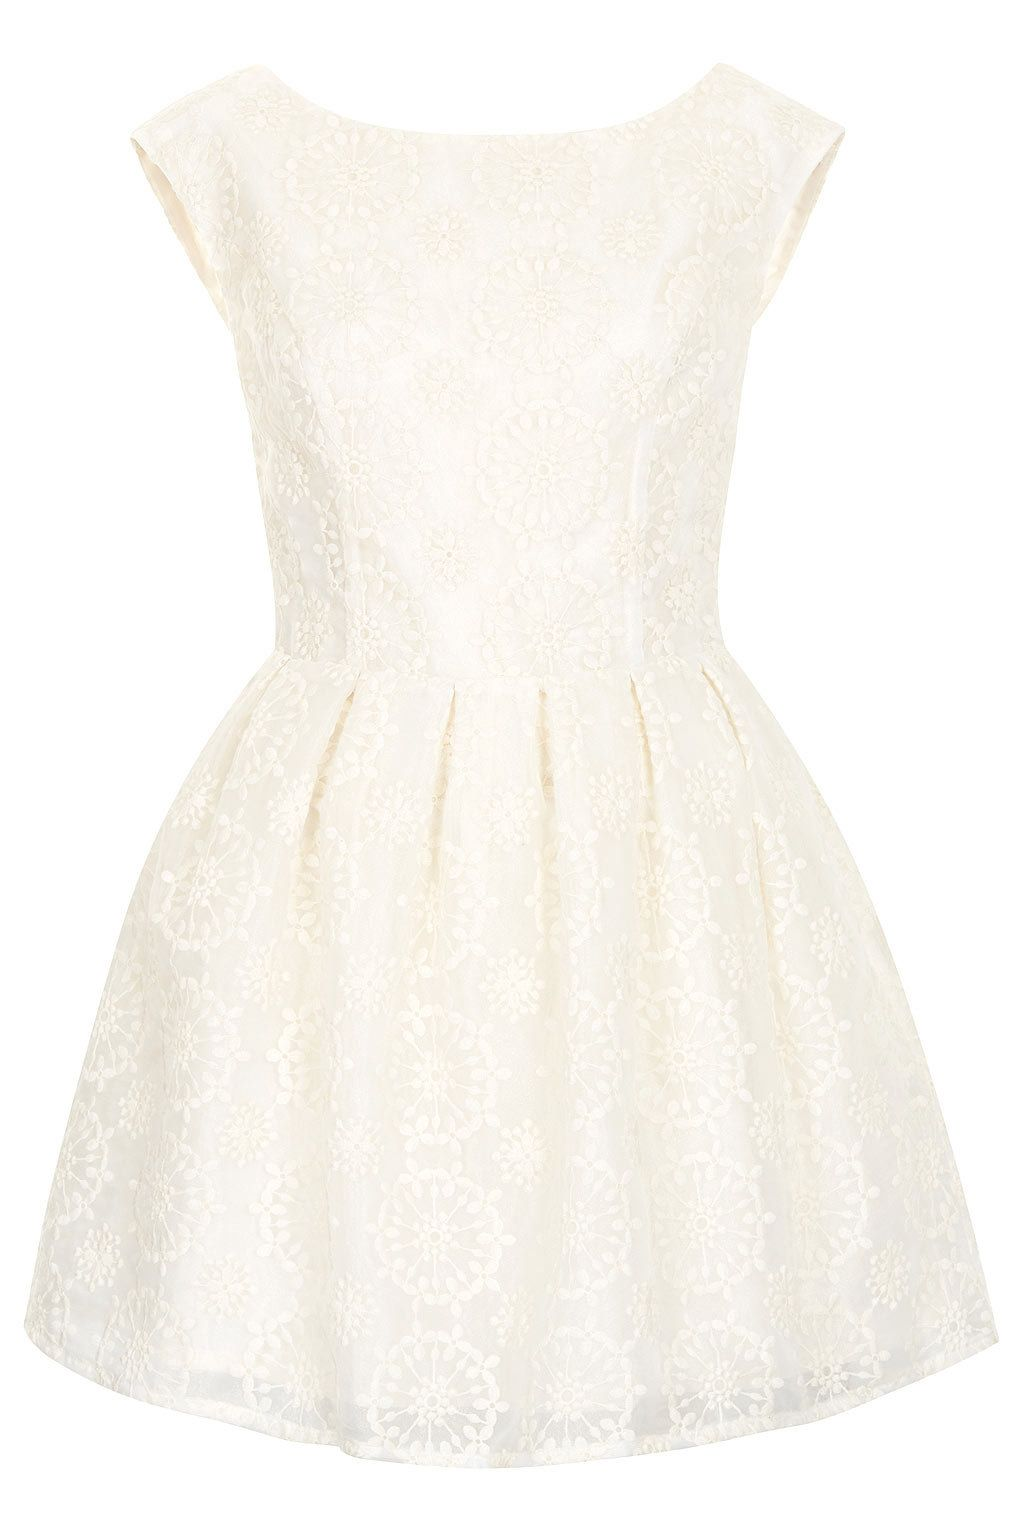 c6aacd0ff520 Embroidered Prom Dress - Dresses - Clothing - Topshop USA | girls ...